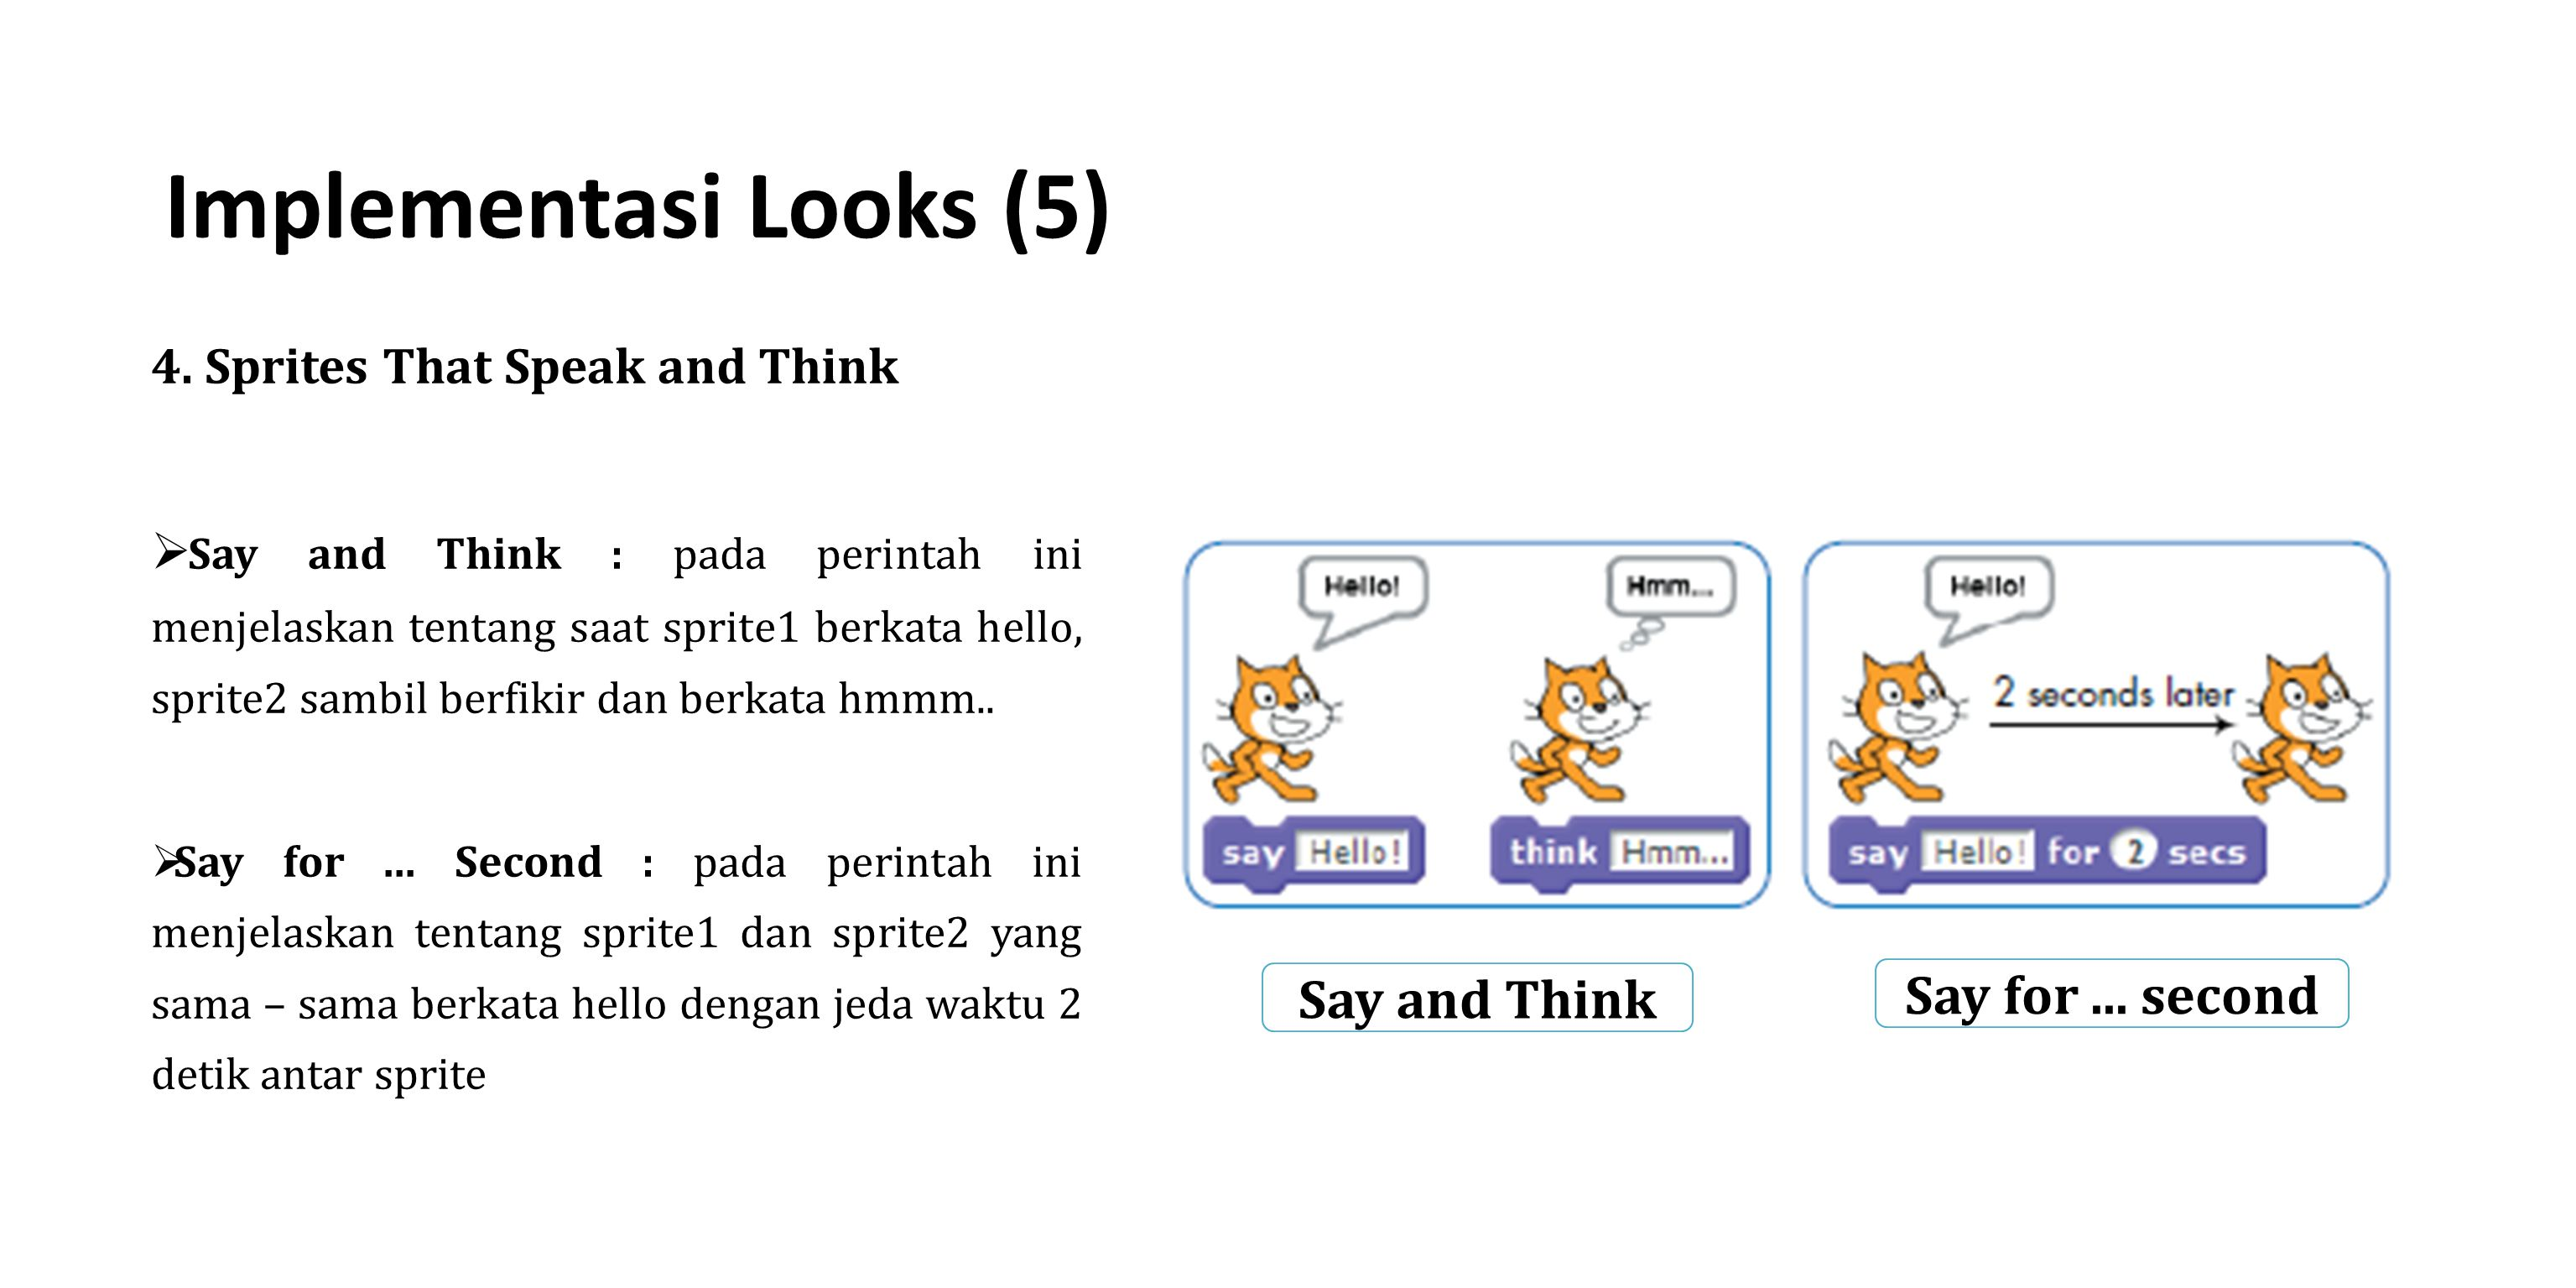 Implementasi Looks (5) Say for ... second Say and Think